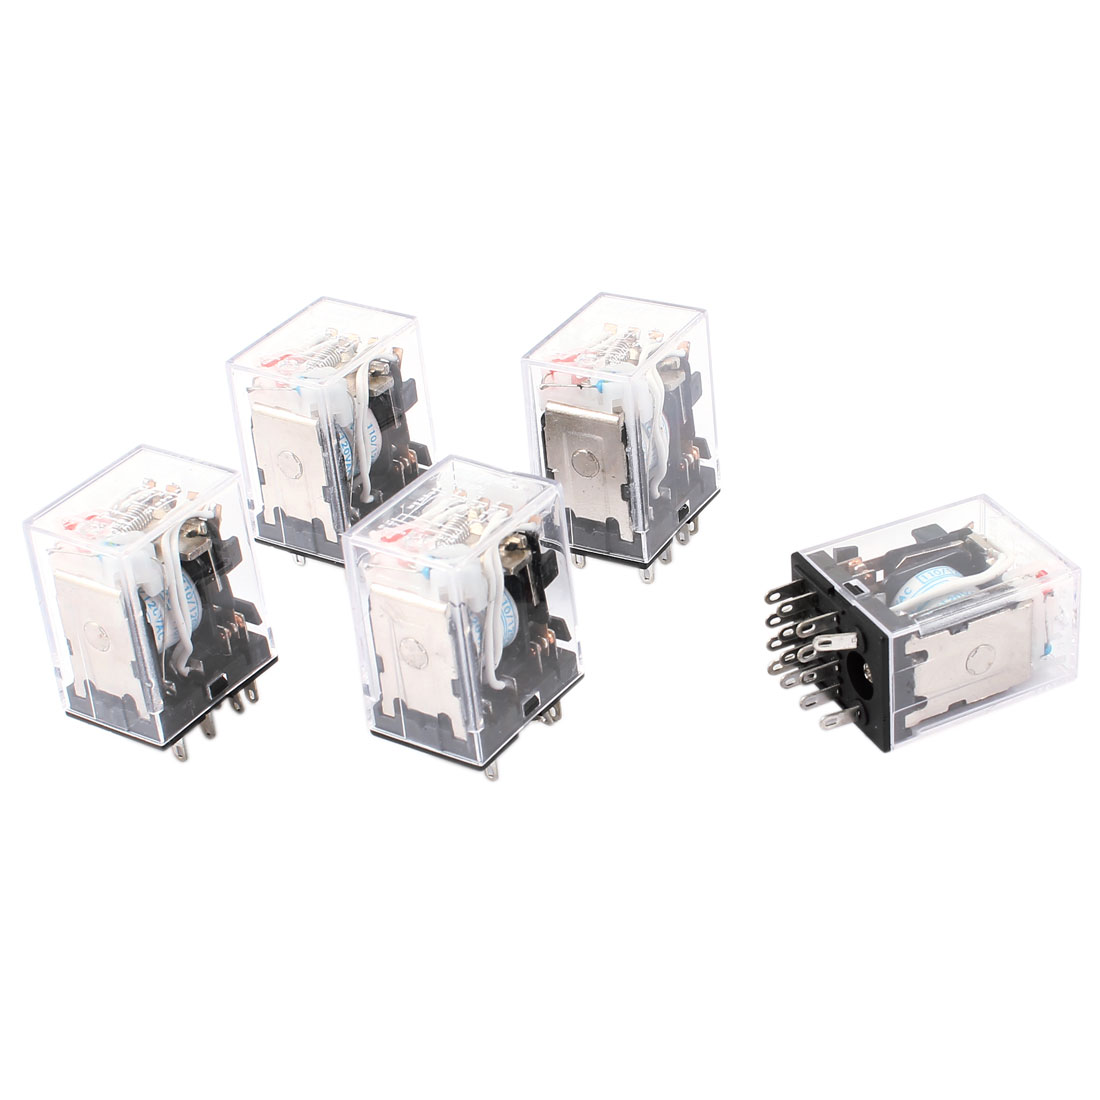 HH54PL AC 110/120V Coil 14 Pins 4PDT Red LED Indicator Light Power Relay 5 Pcs